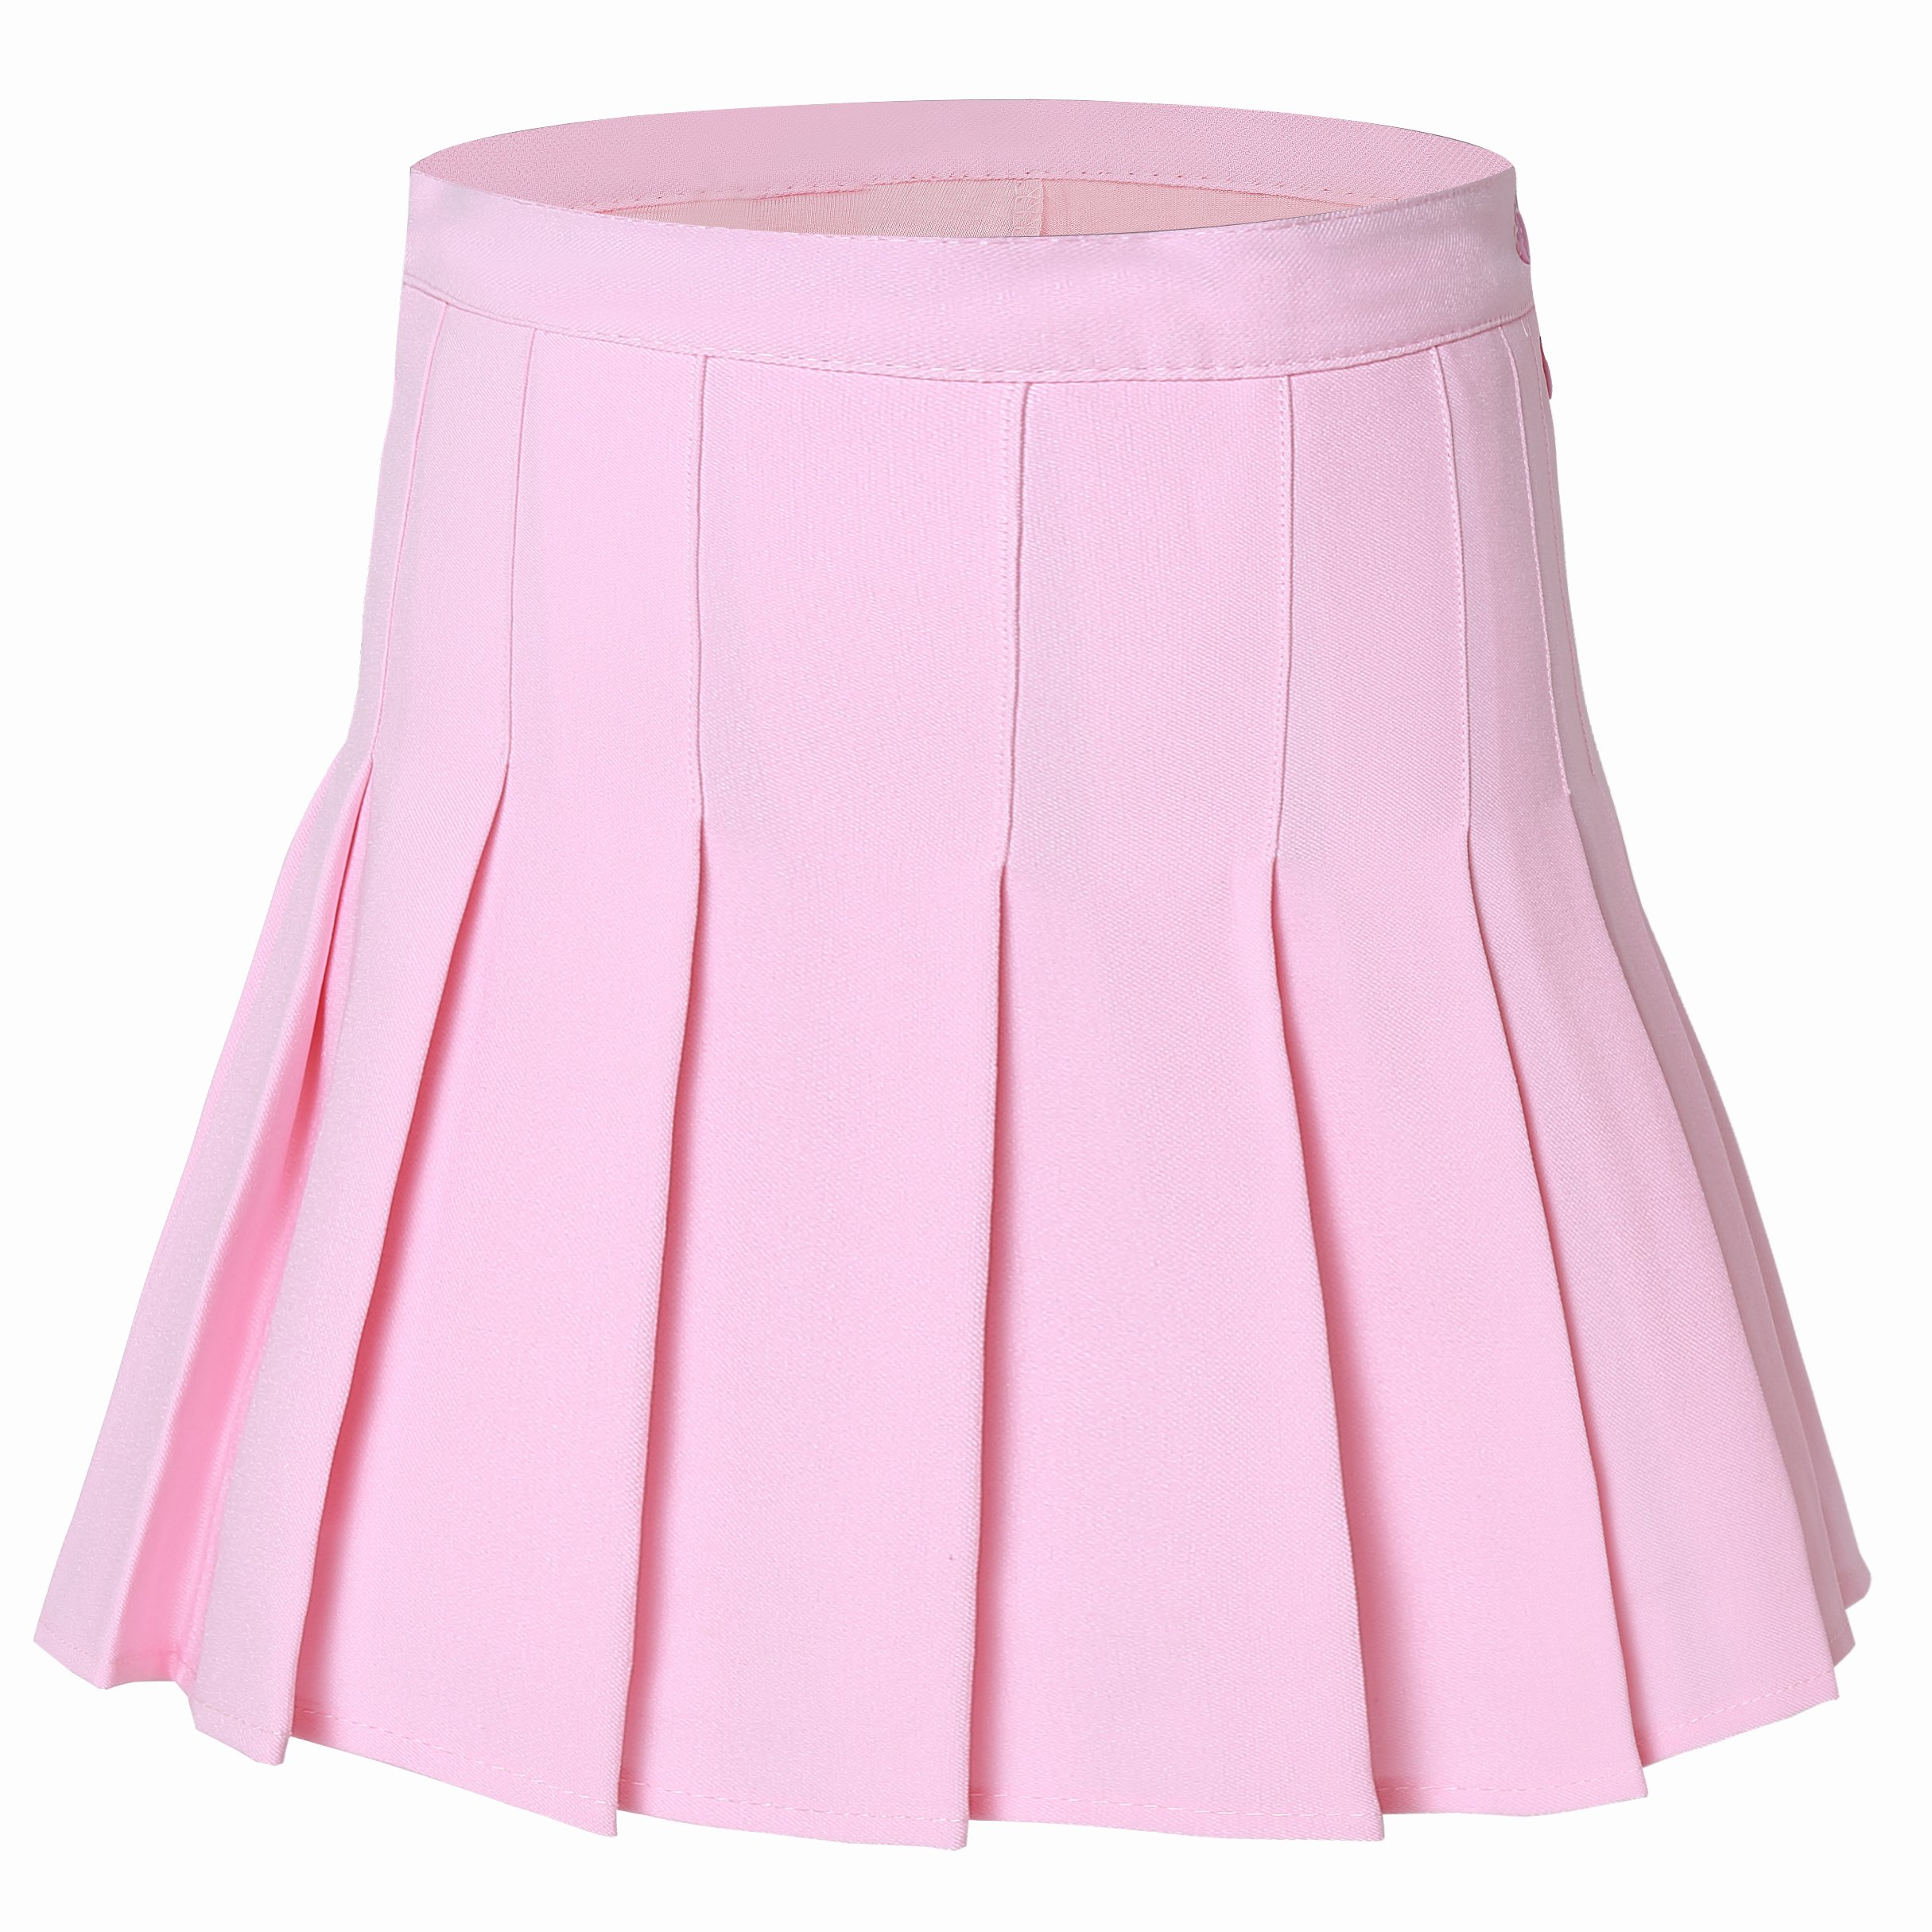 Tremour Women'Solid Pleated Plus Size Sport Tennis Skirts Pink L